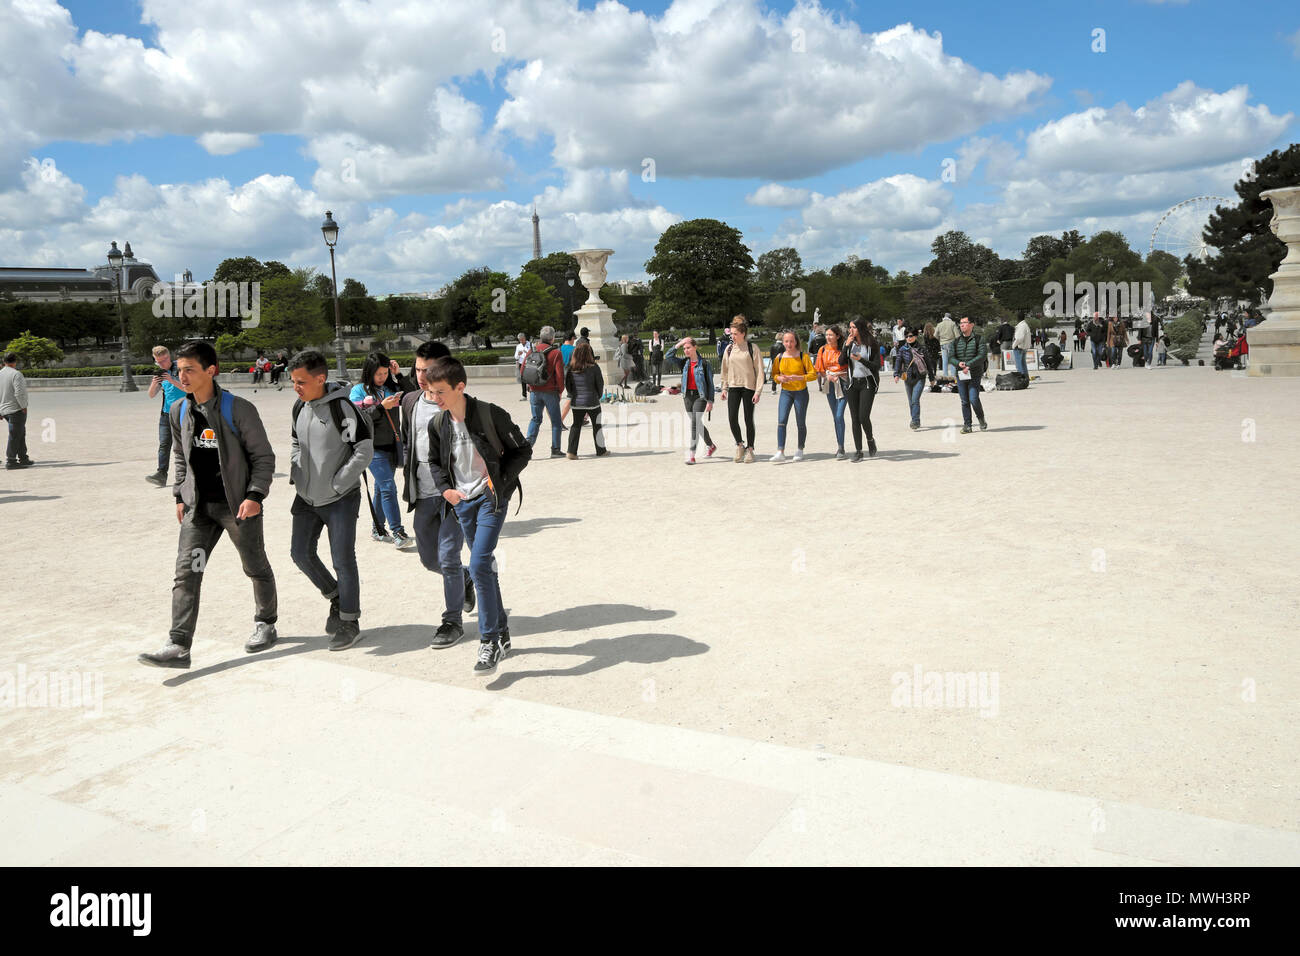 A group of students walking along a path in a park in Paris, France   KATHY DEWITT - Stock Image